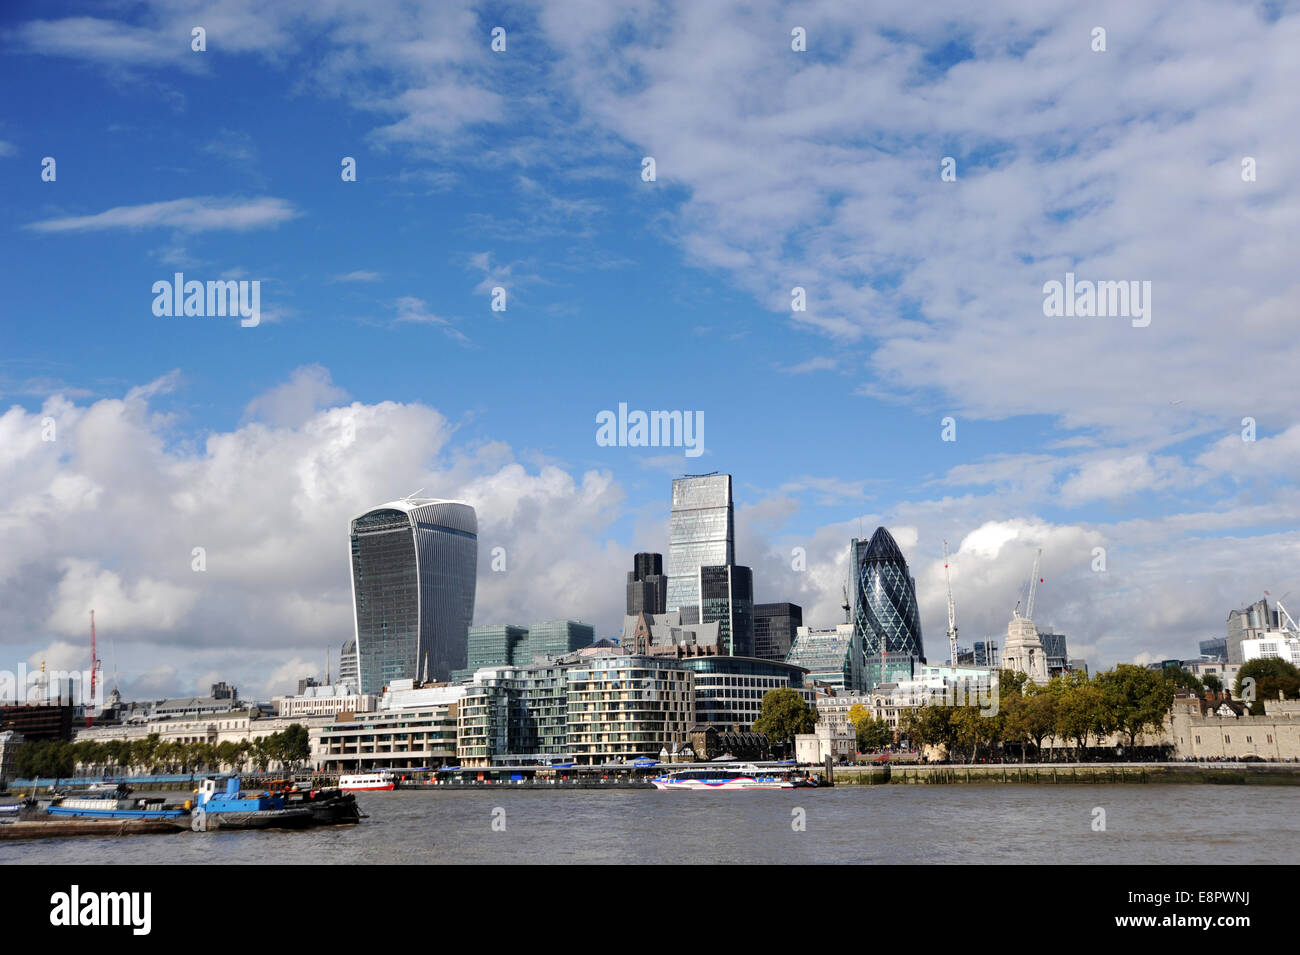 View across the River Thames towards the city in London showing buildings known as the walkie talkie (left) the - Stock Image